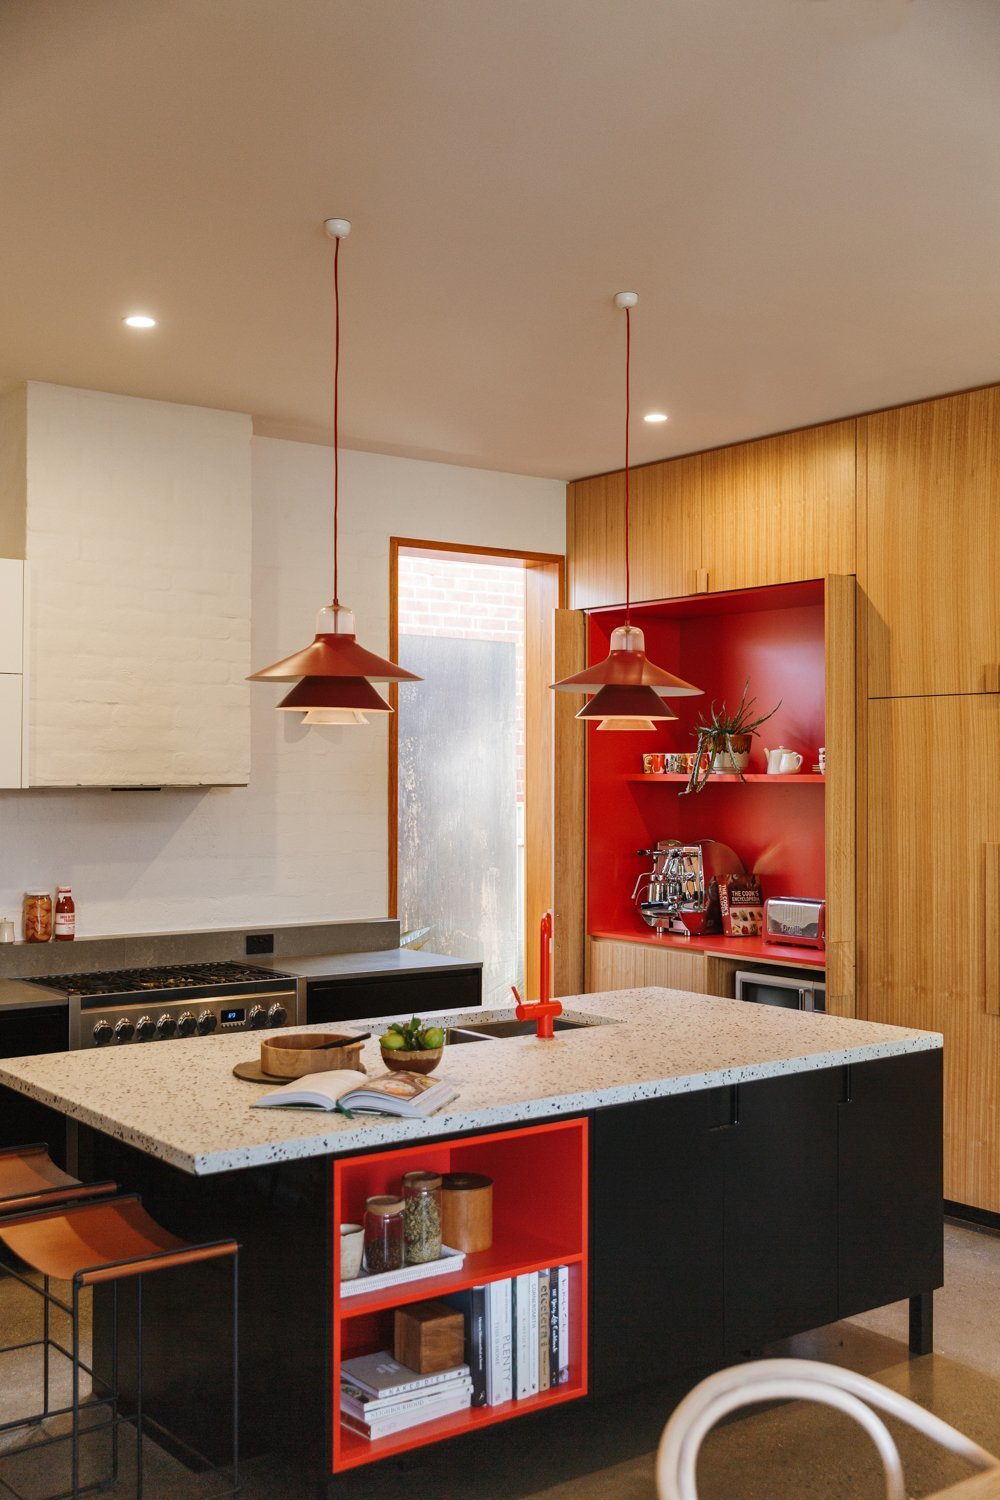 """Kitchen, Concrete Counter, Range, Pendant Lighting, Brick Backsplashe, Ceiling Lighting, and Wood Cabinet The owners asked for """"random pops of red"""" to flash throughout their kitchen renovation, complete with blackbutt wood, concrete countertops, and a terrazzo island.  Photo 3 of 9 in 9 Countertop and Cabinetry Pairings to Take Your Kitchen From Drab to Delicious"""